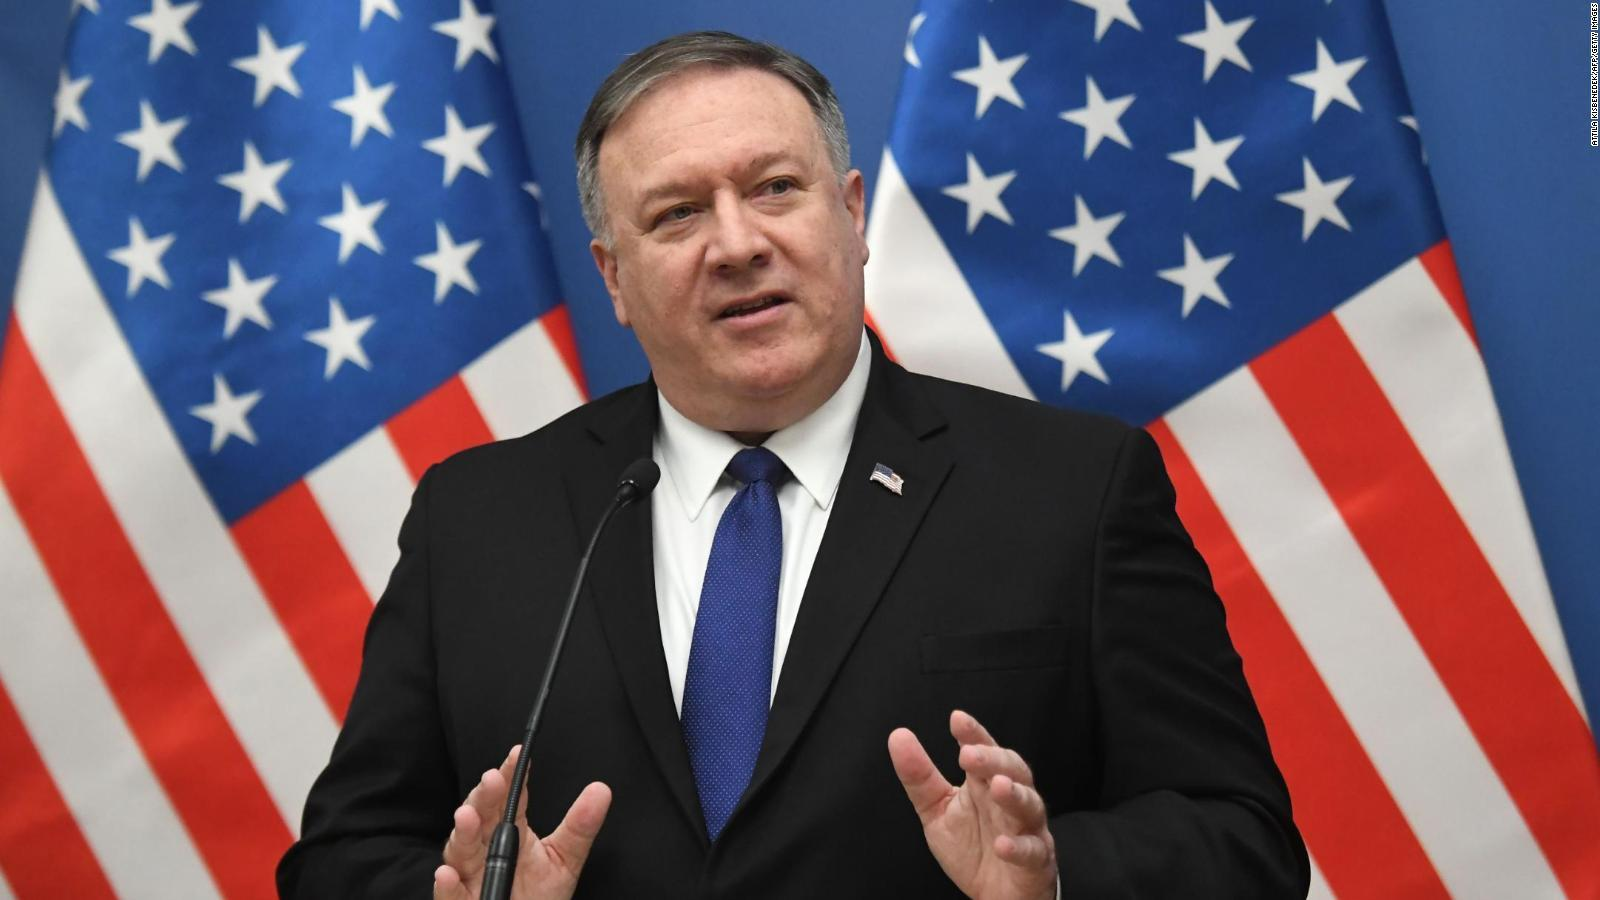 Pompeo had secret meeting with GOP donors